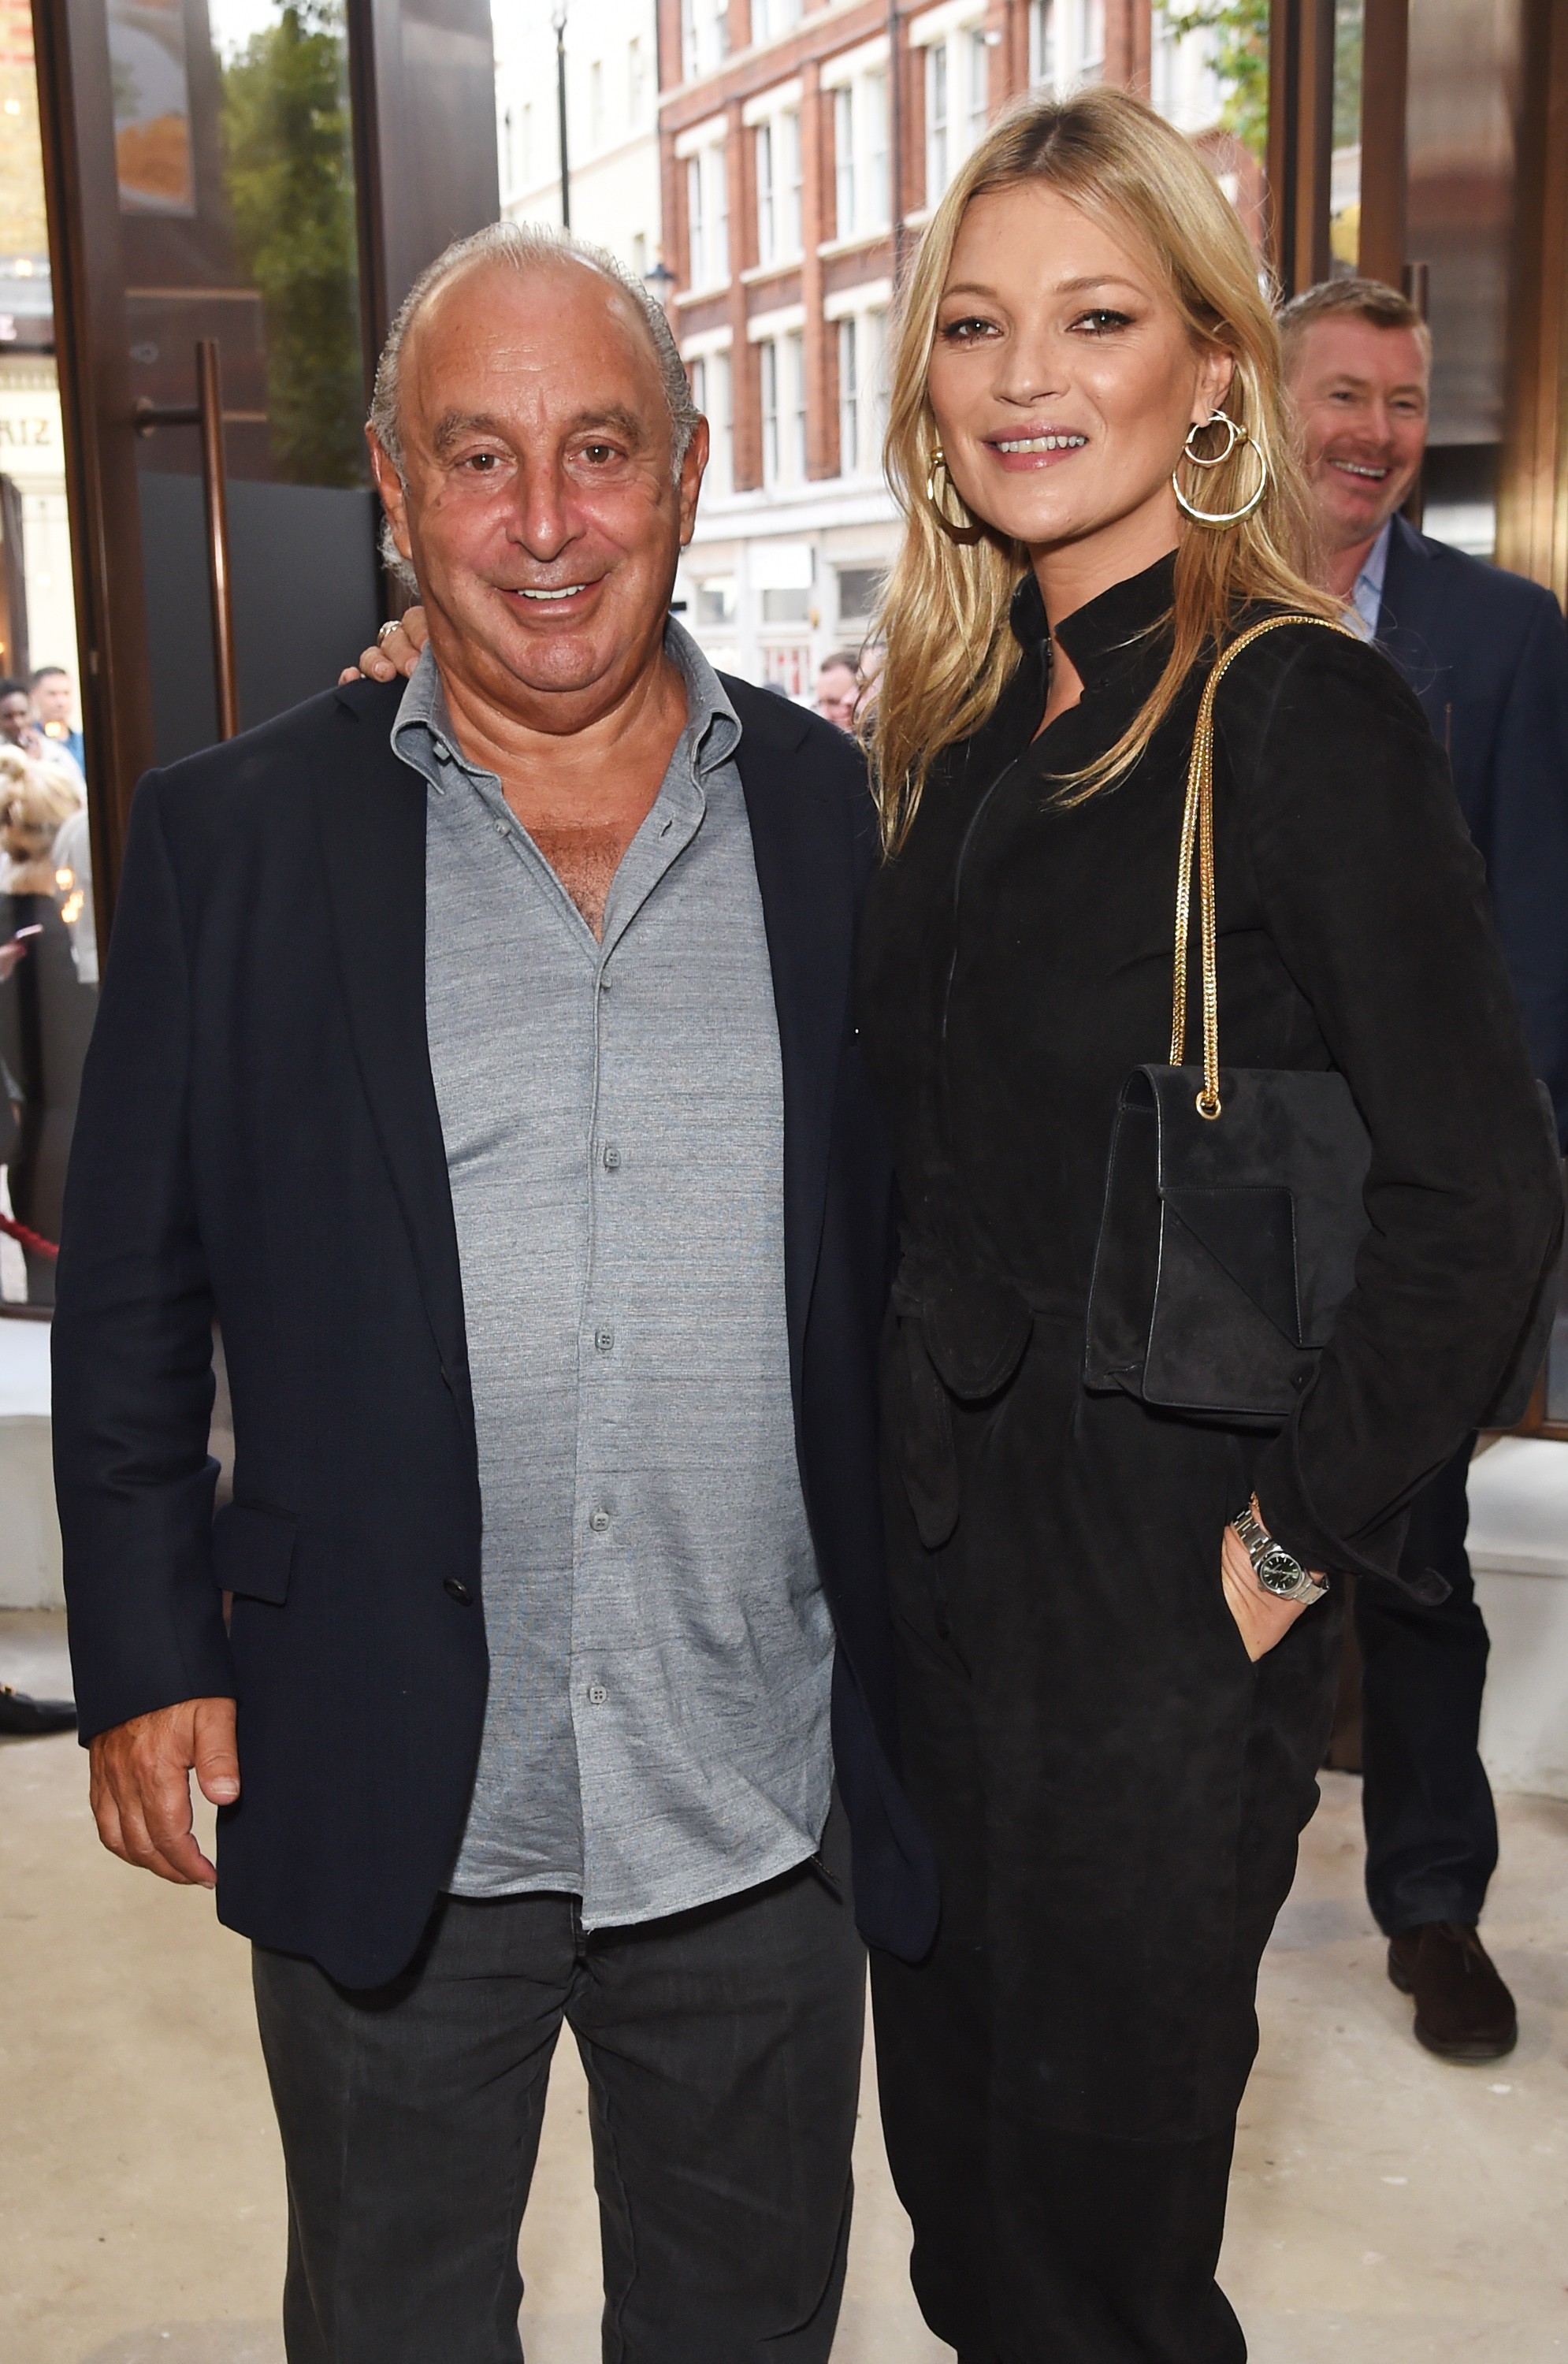 Sir Philip Green and Kate Moss both attended the Topshop London Fashion Week show in September 2017.